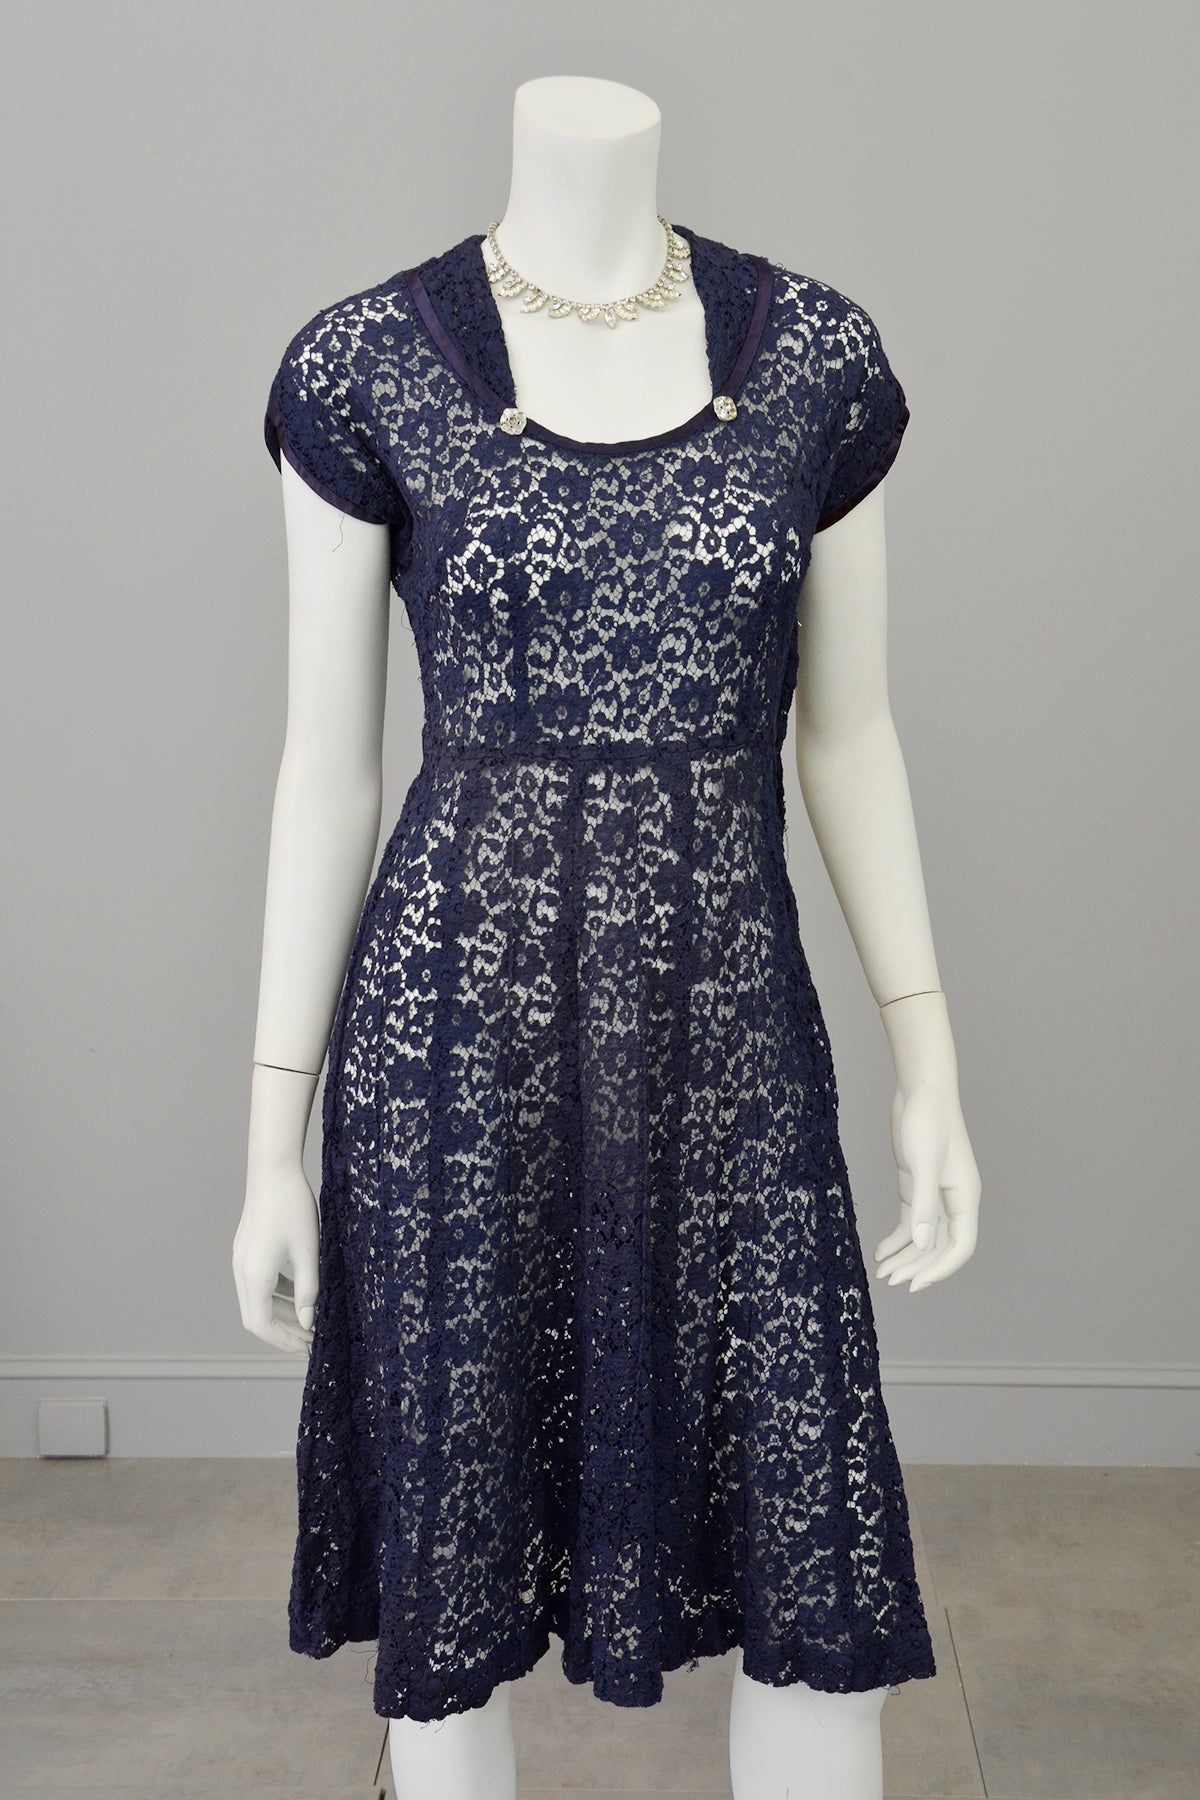 1940s Navy Blue Embroidered Lace Dress